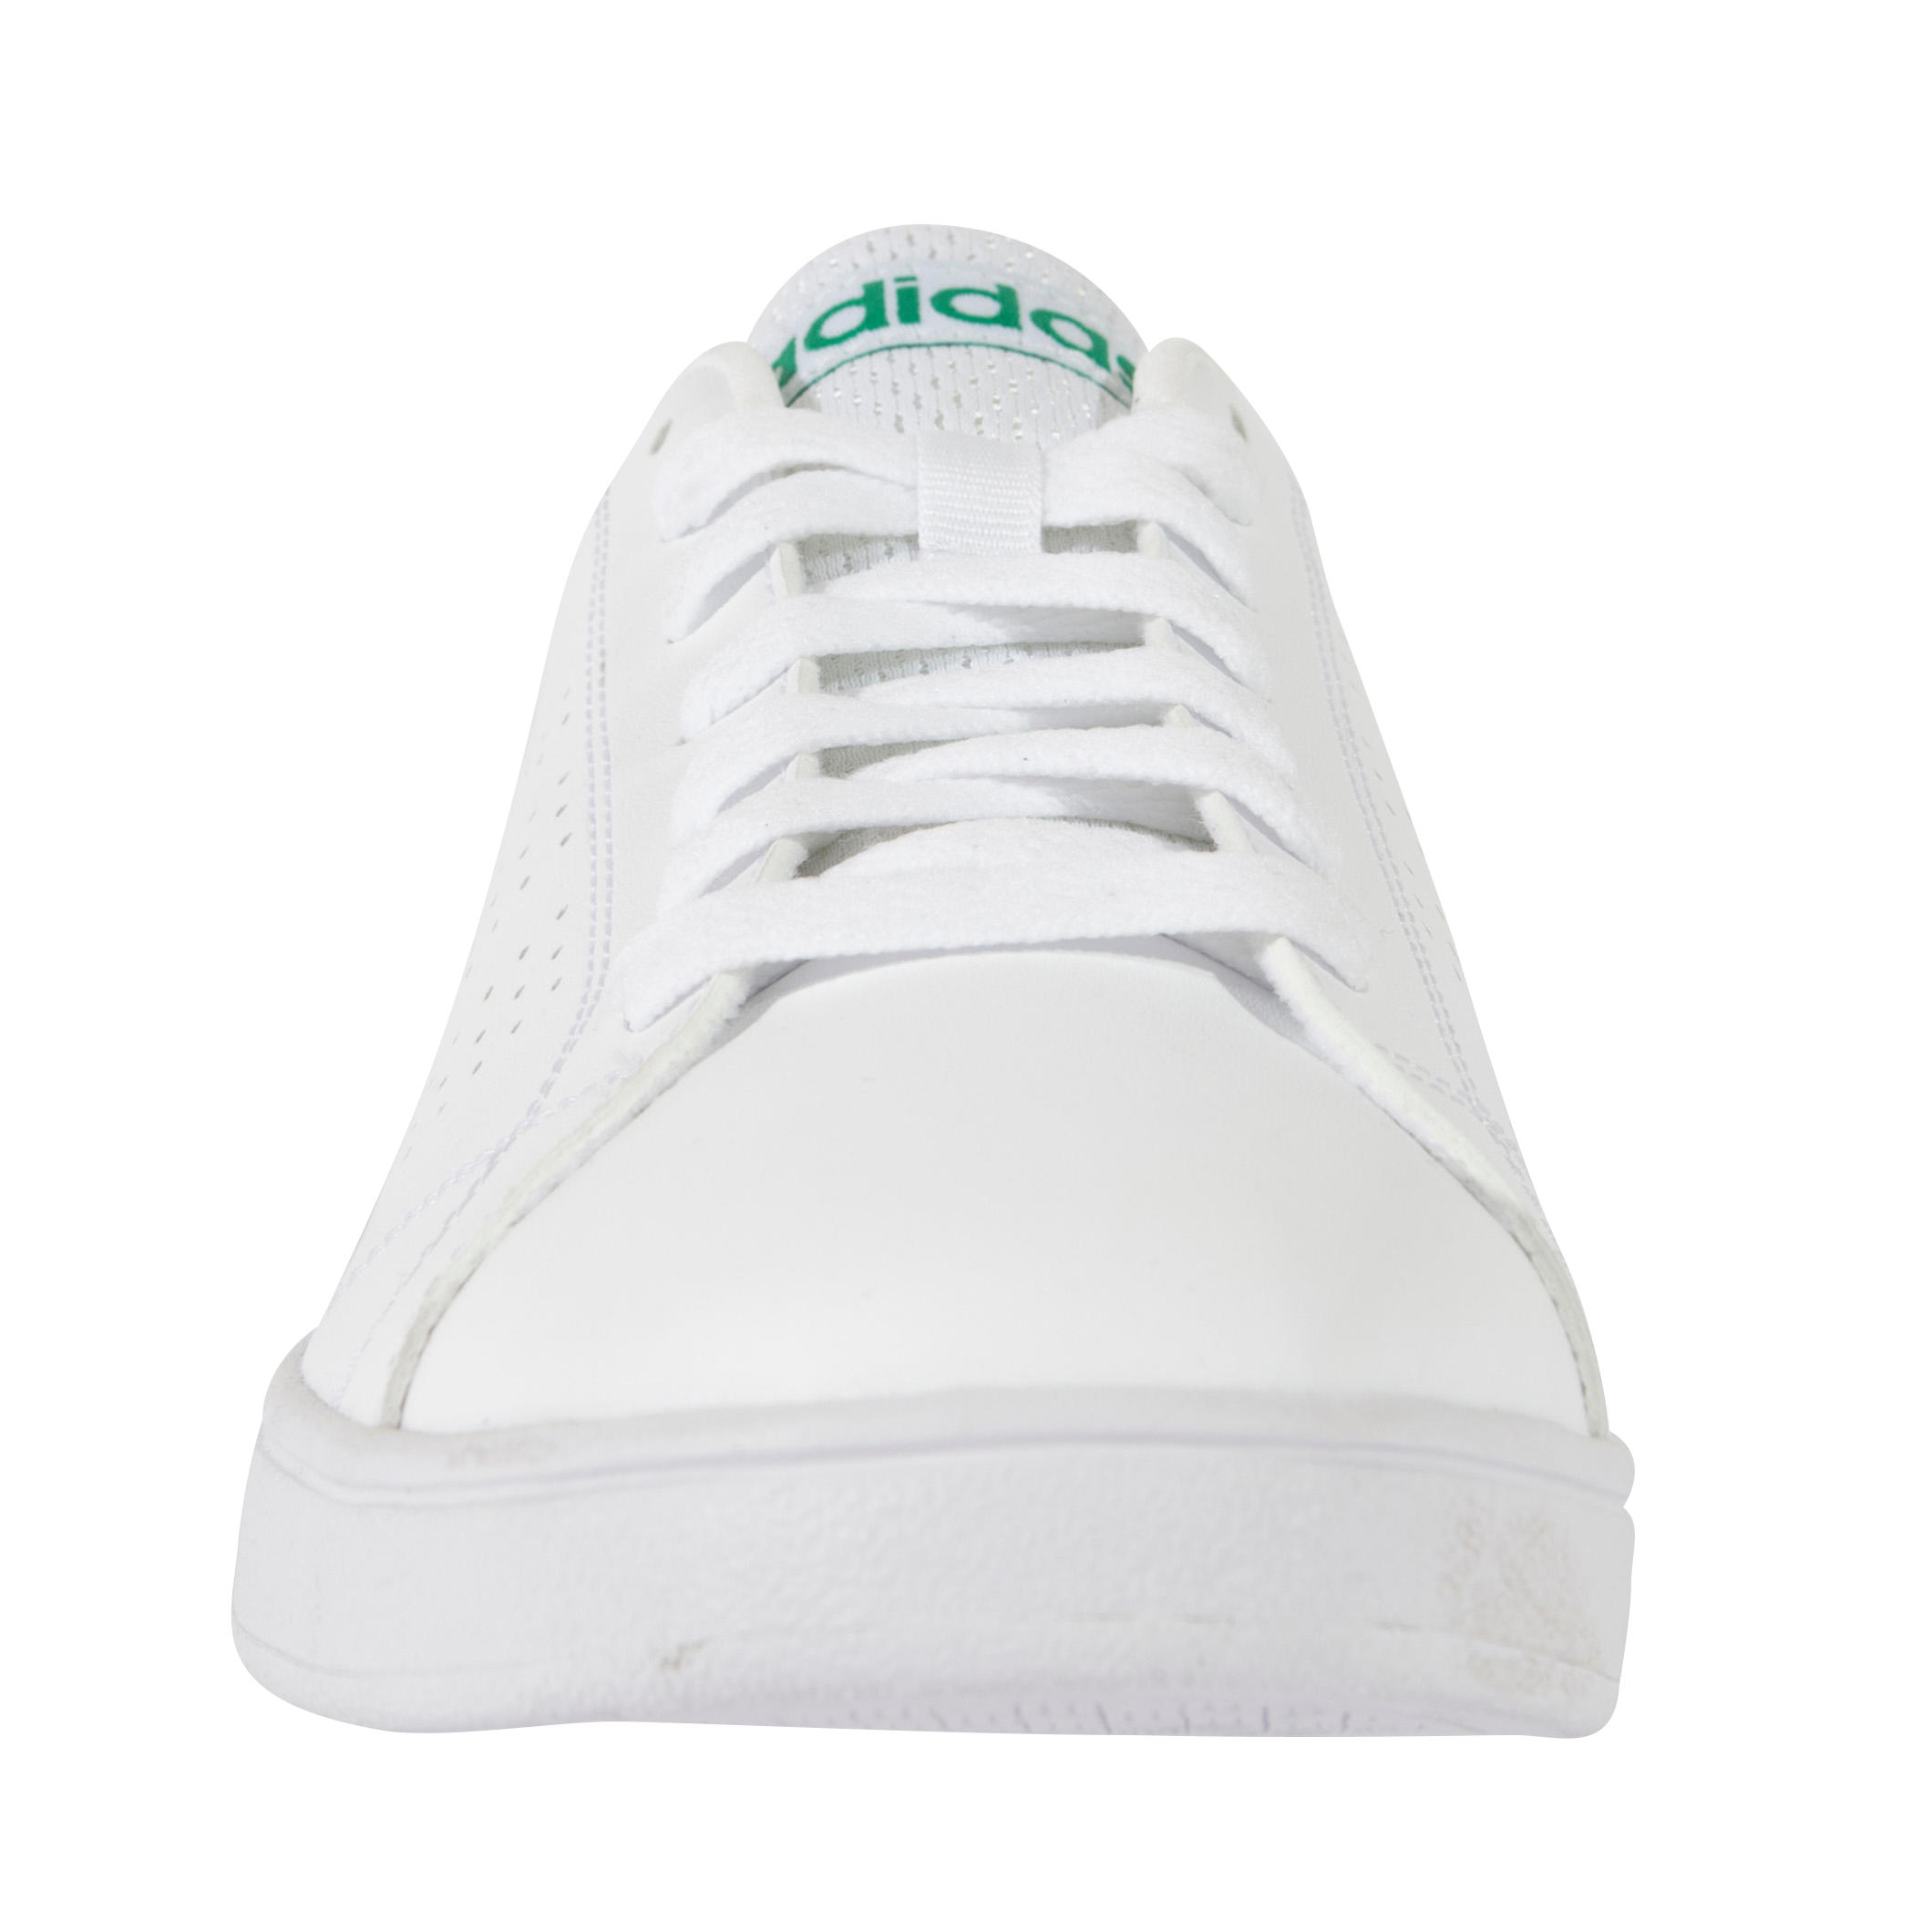 Tennis Advantage Clean Chaussures Blanc De Vert Homme Y6gbf7vy